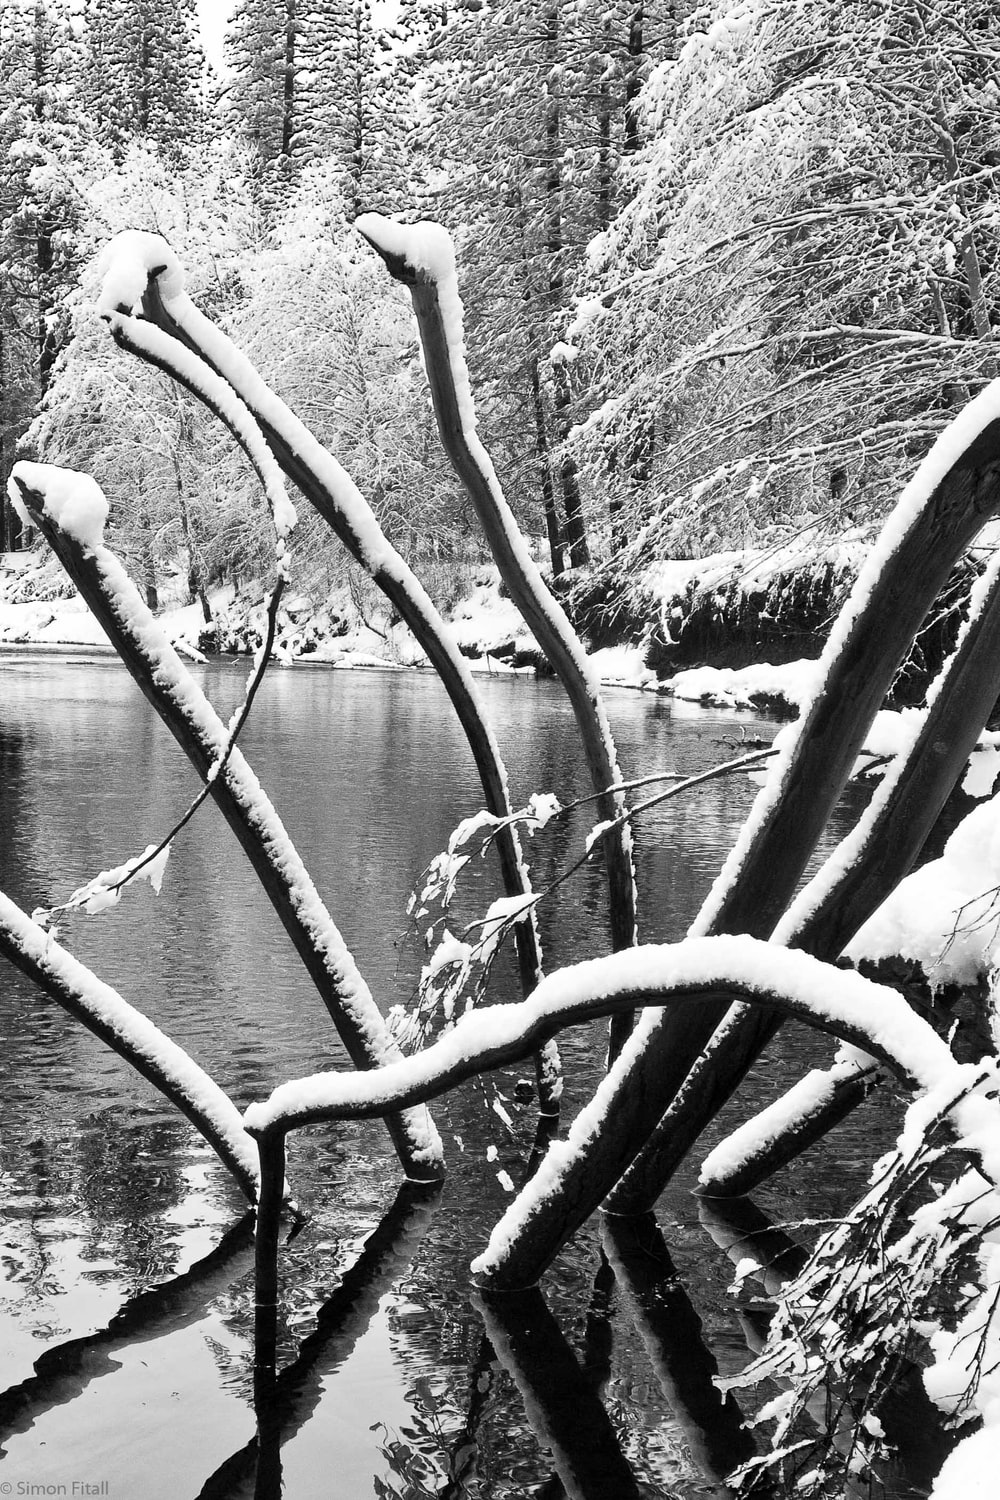 grayscale photo of tree branch near body of water